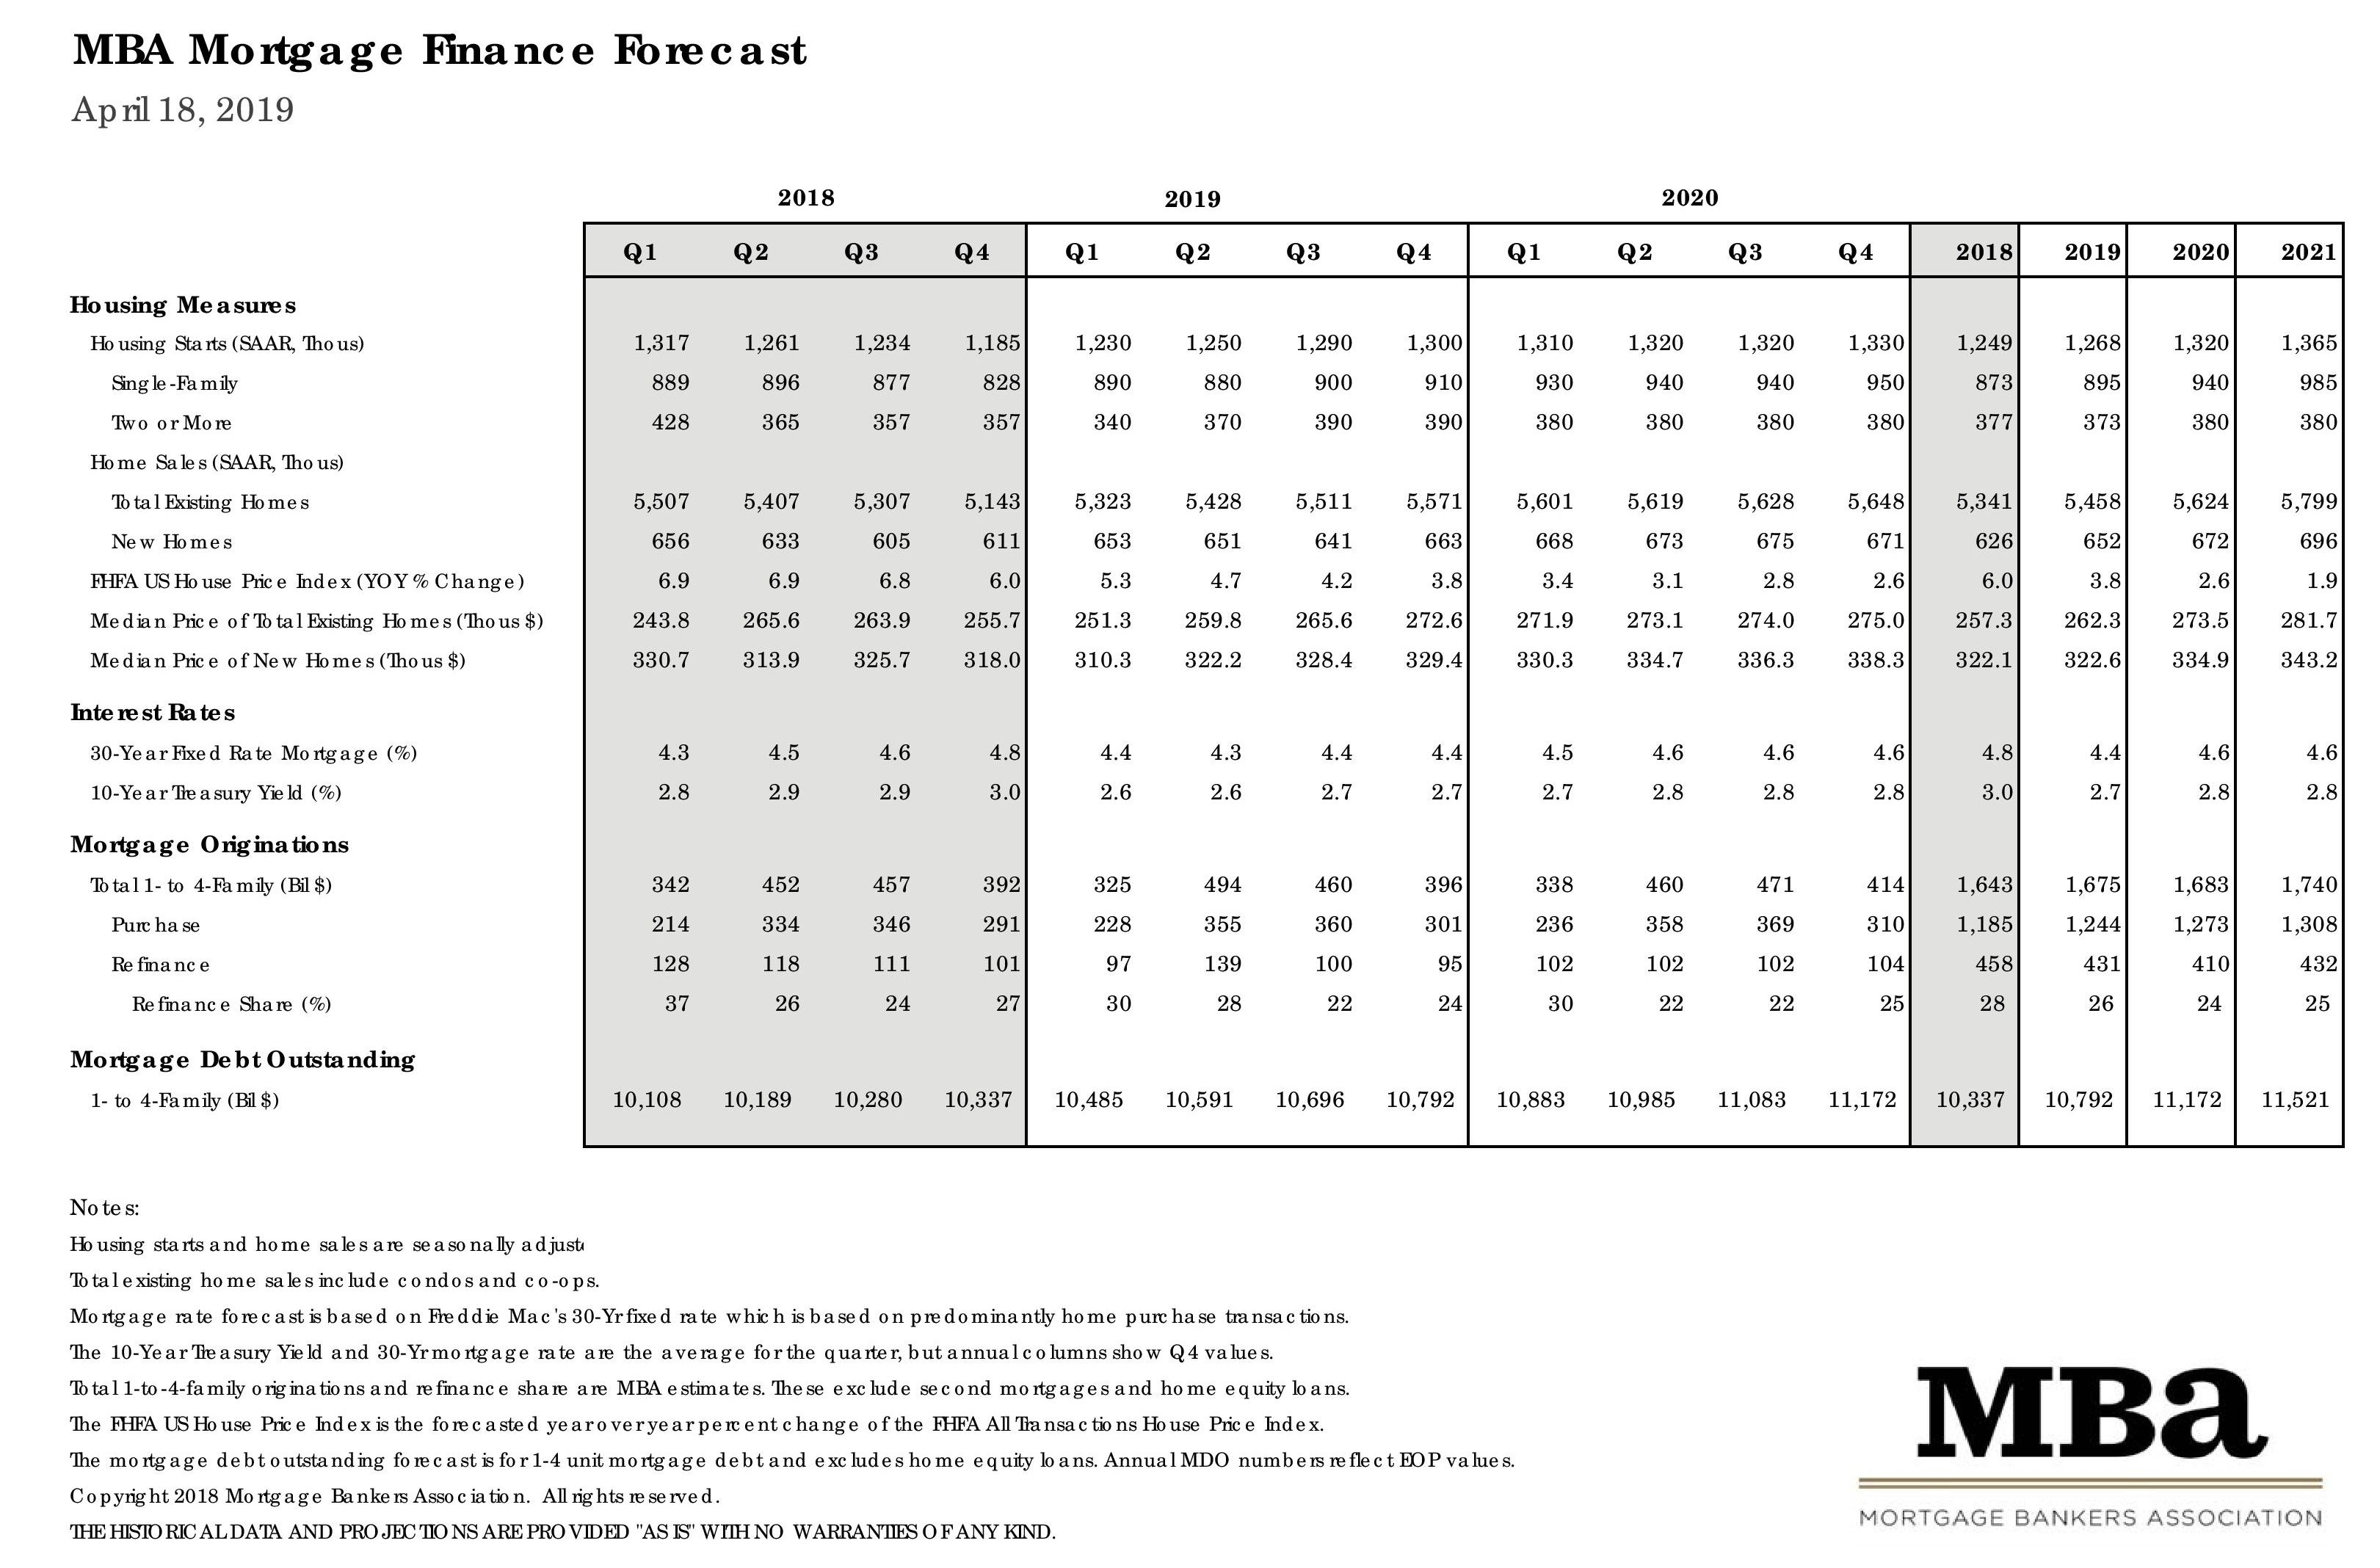 Mortgage Bankers Association April 2019 Rate Forecast Report